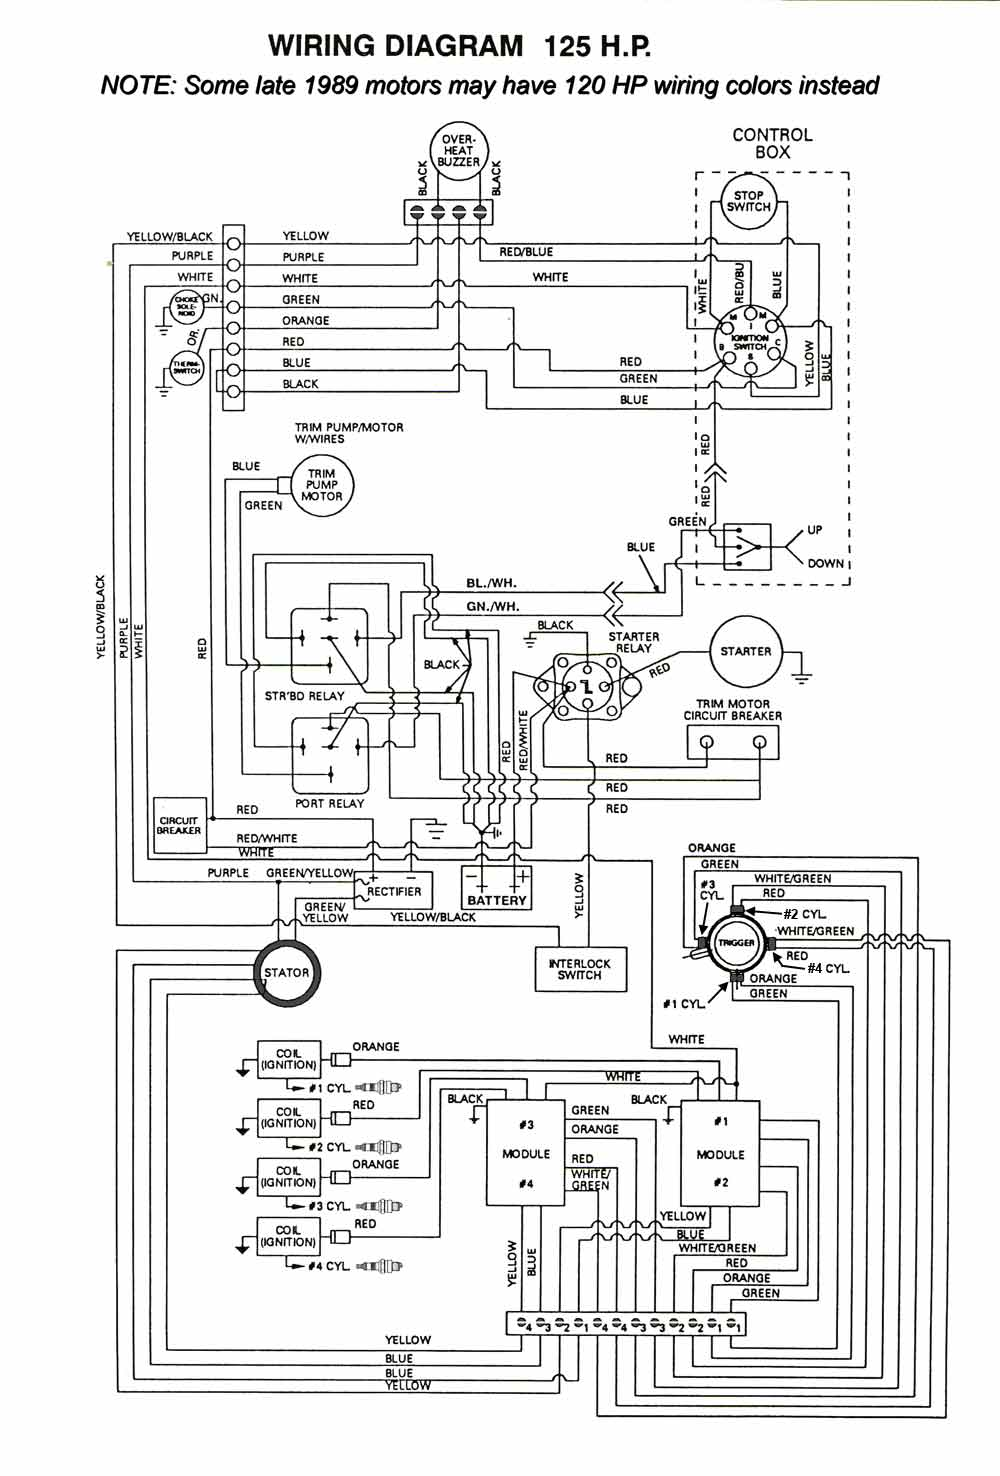 Chrysler Boat Wiring Diagram Worksheet And 1989 Dodge D150 Ignition Outboard Diagrams Mastertech Marine Rh Maxrules Com 2004 Pacifica